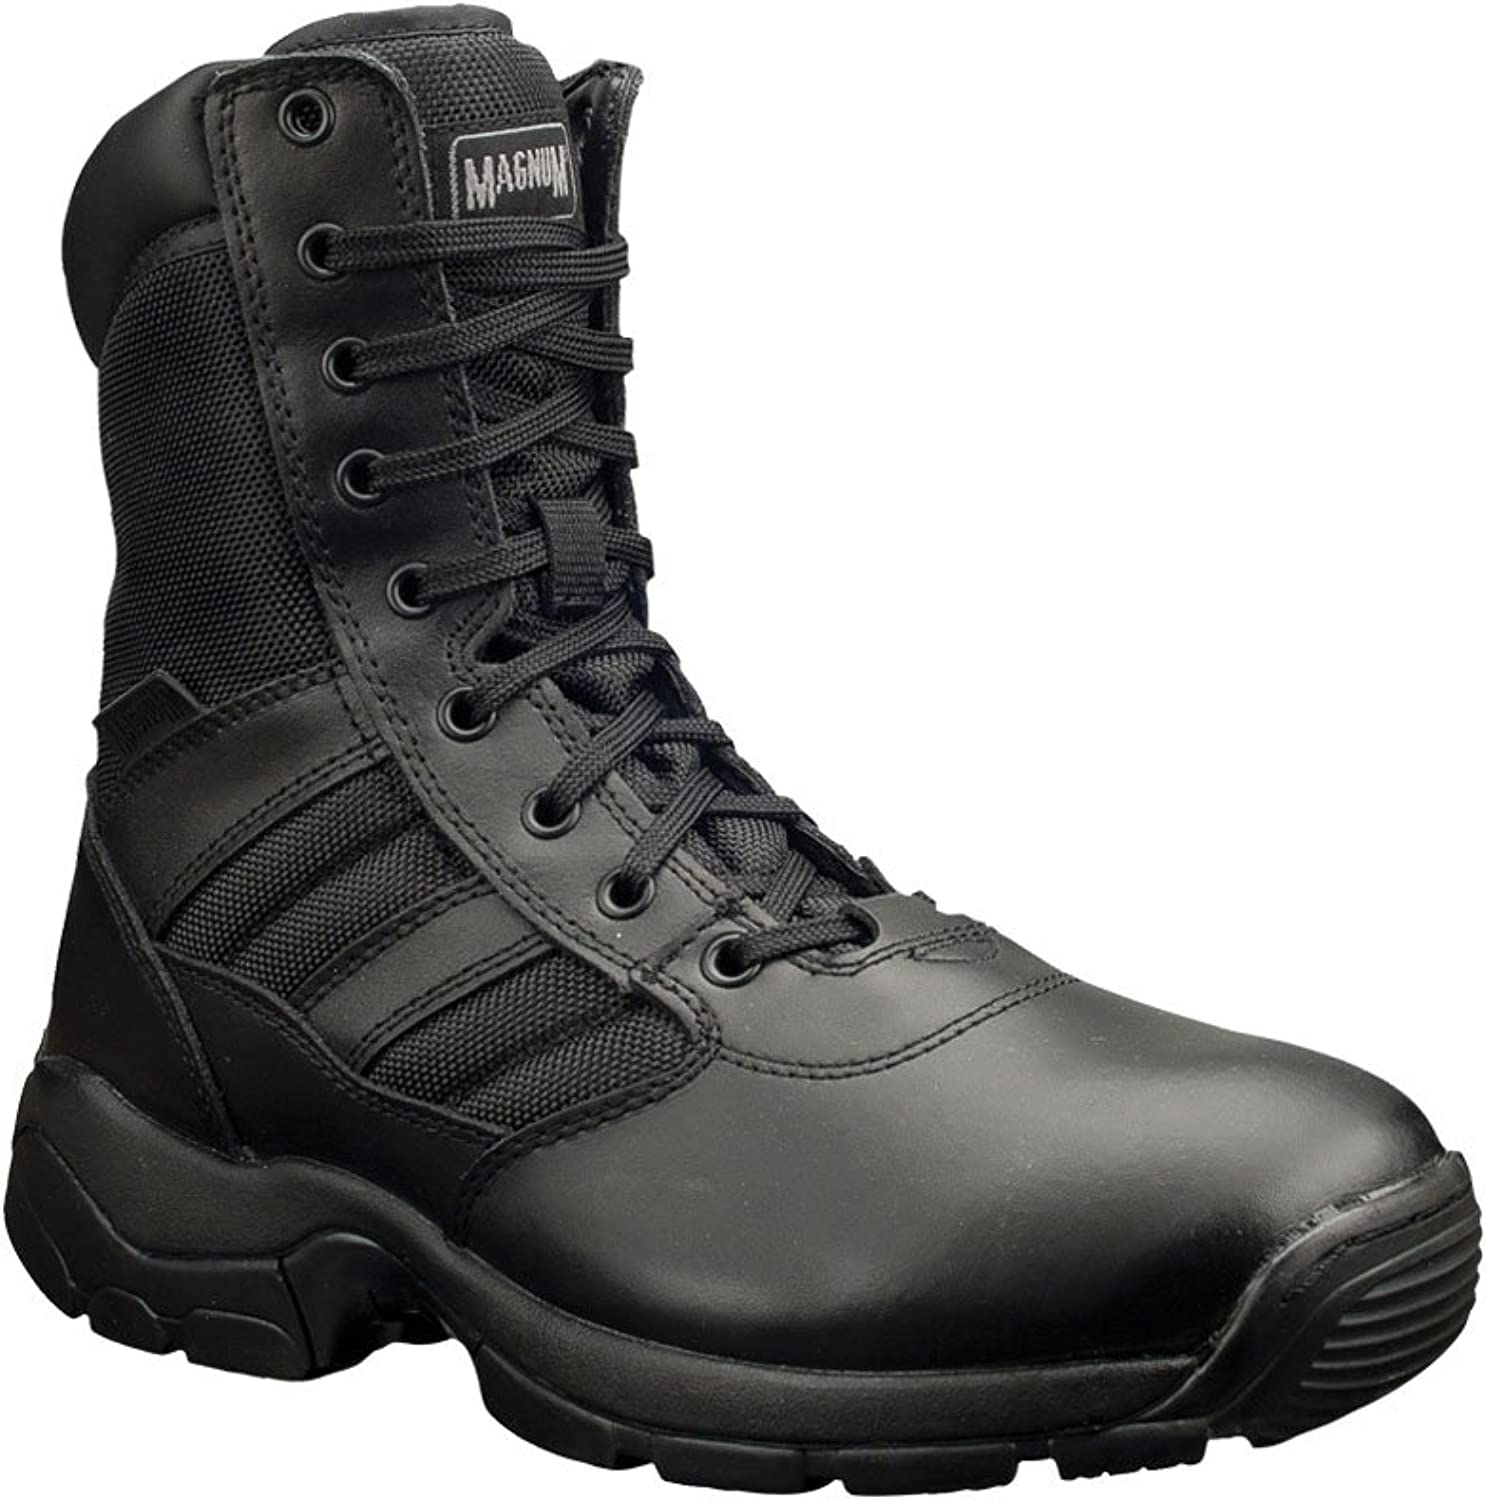 Alexandra Magnum STC-FW525BK-10 Panther 8.0 Safety Boot, Plain, Leather, Size  10, Black